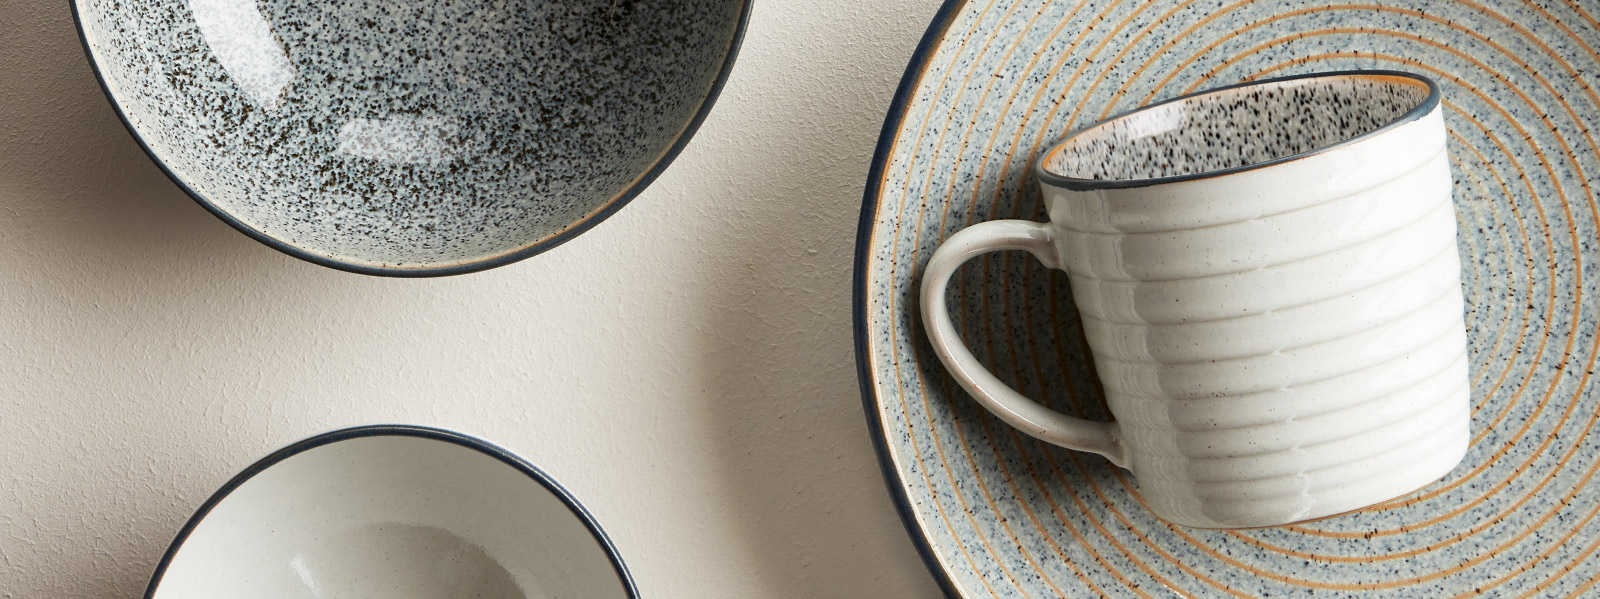 Denby Studio Grey Premium Crockery from Stephensons Catering Suppliers